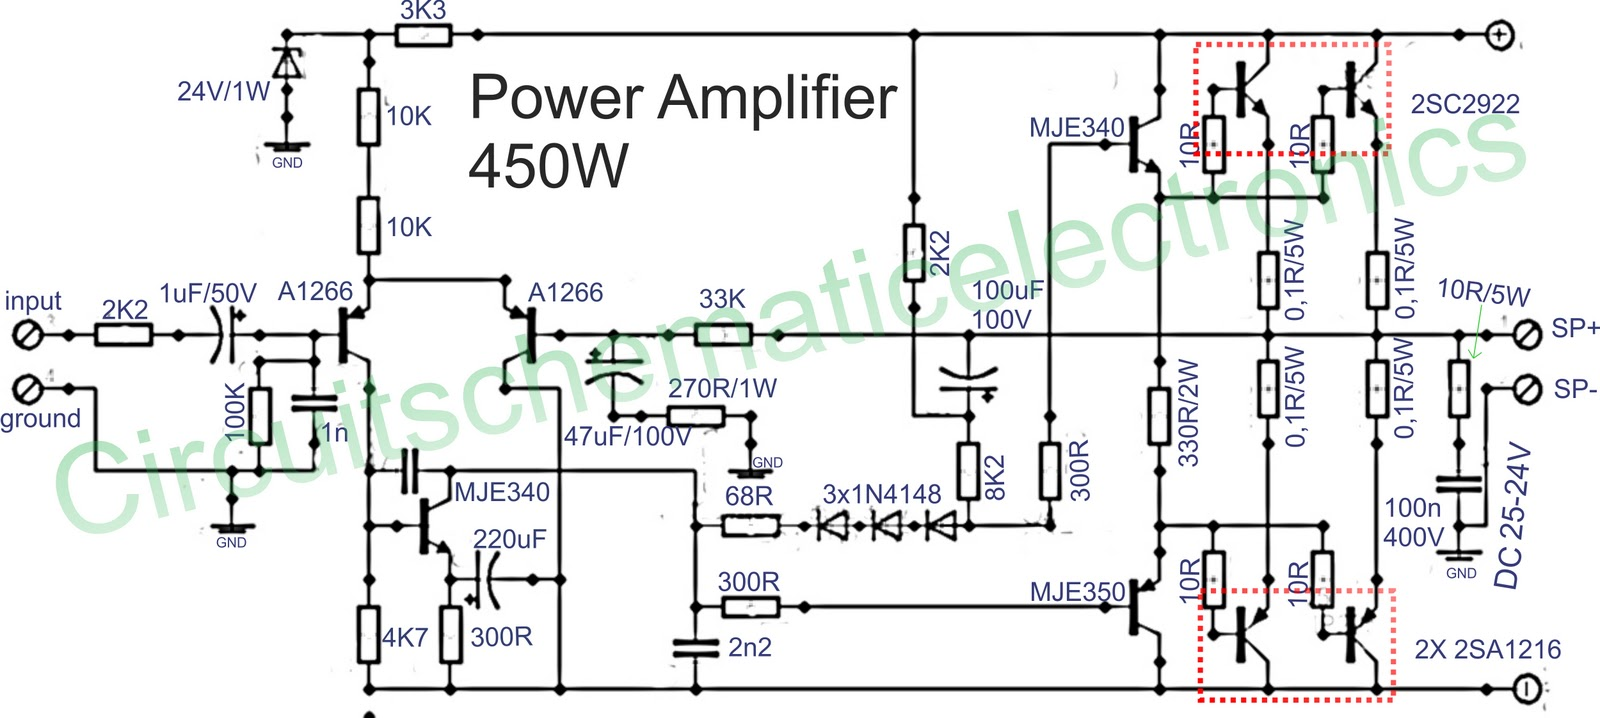 450w Power Amplifier